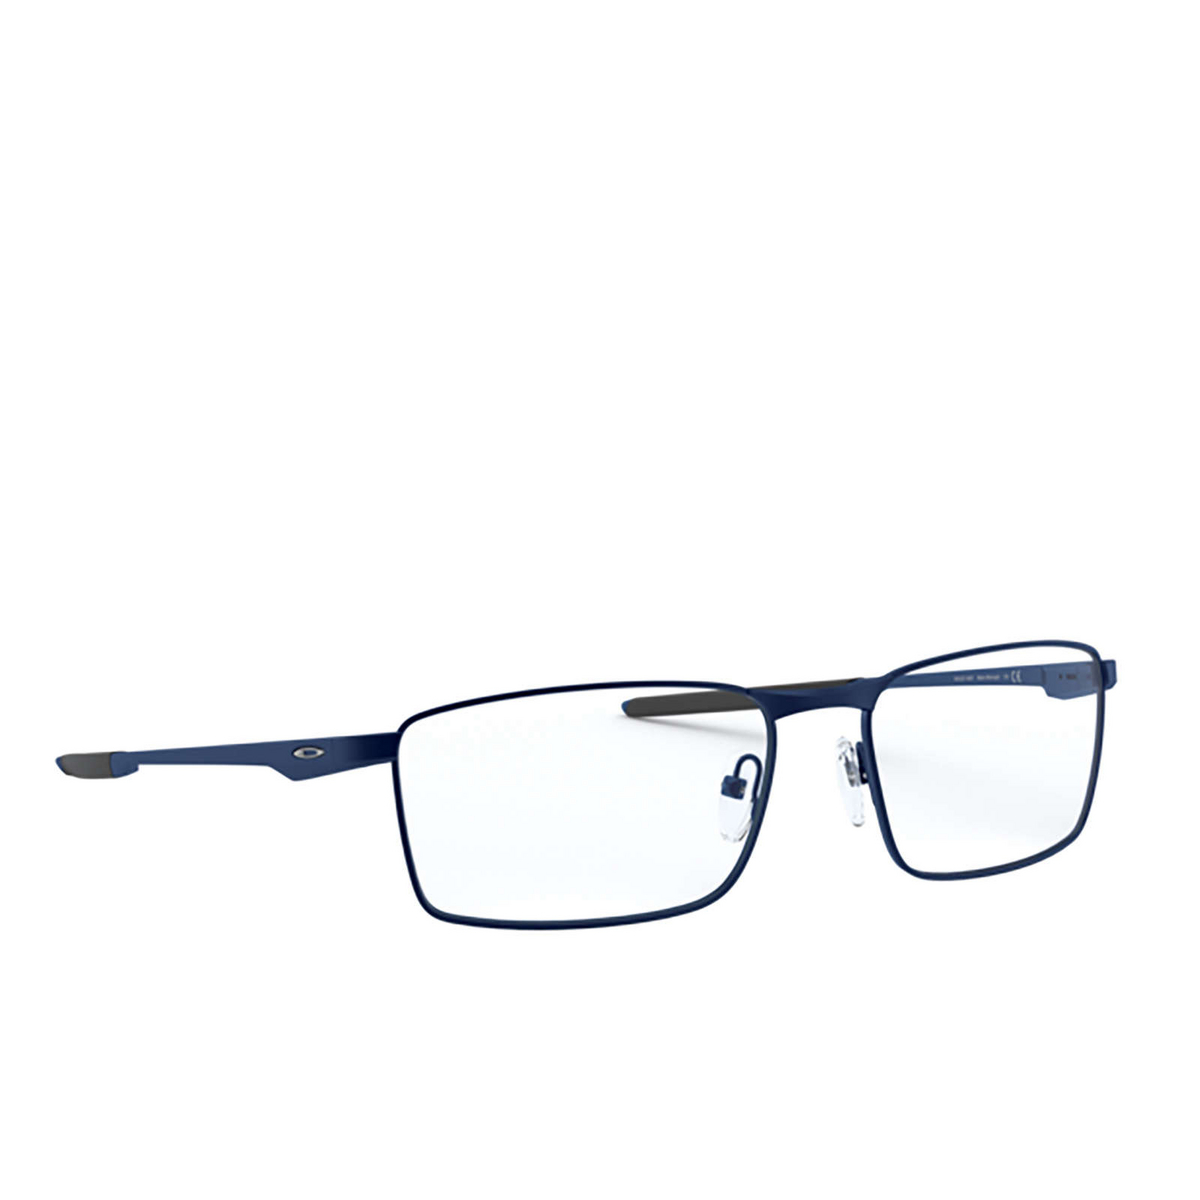 Oakley® Rectangle Eyeglasses: Fuller OX3227 color Matte Midnight 322704 - three-quarters view.